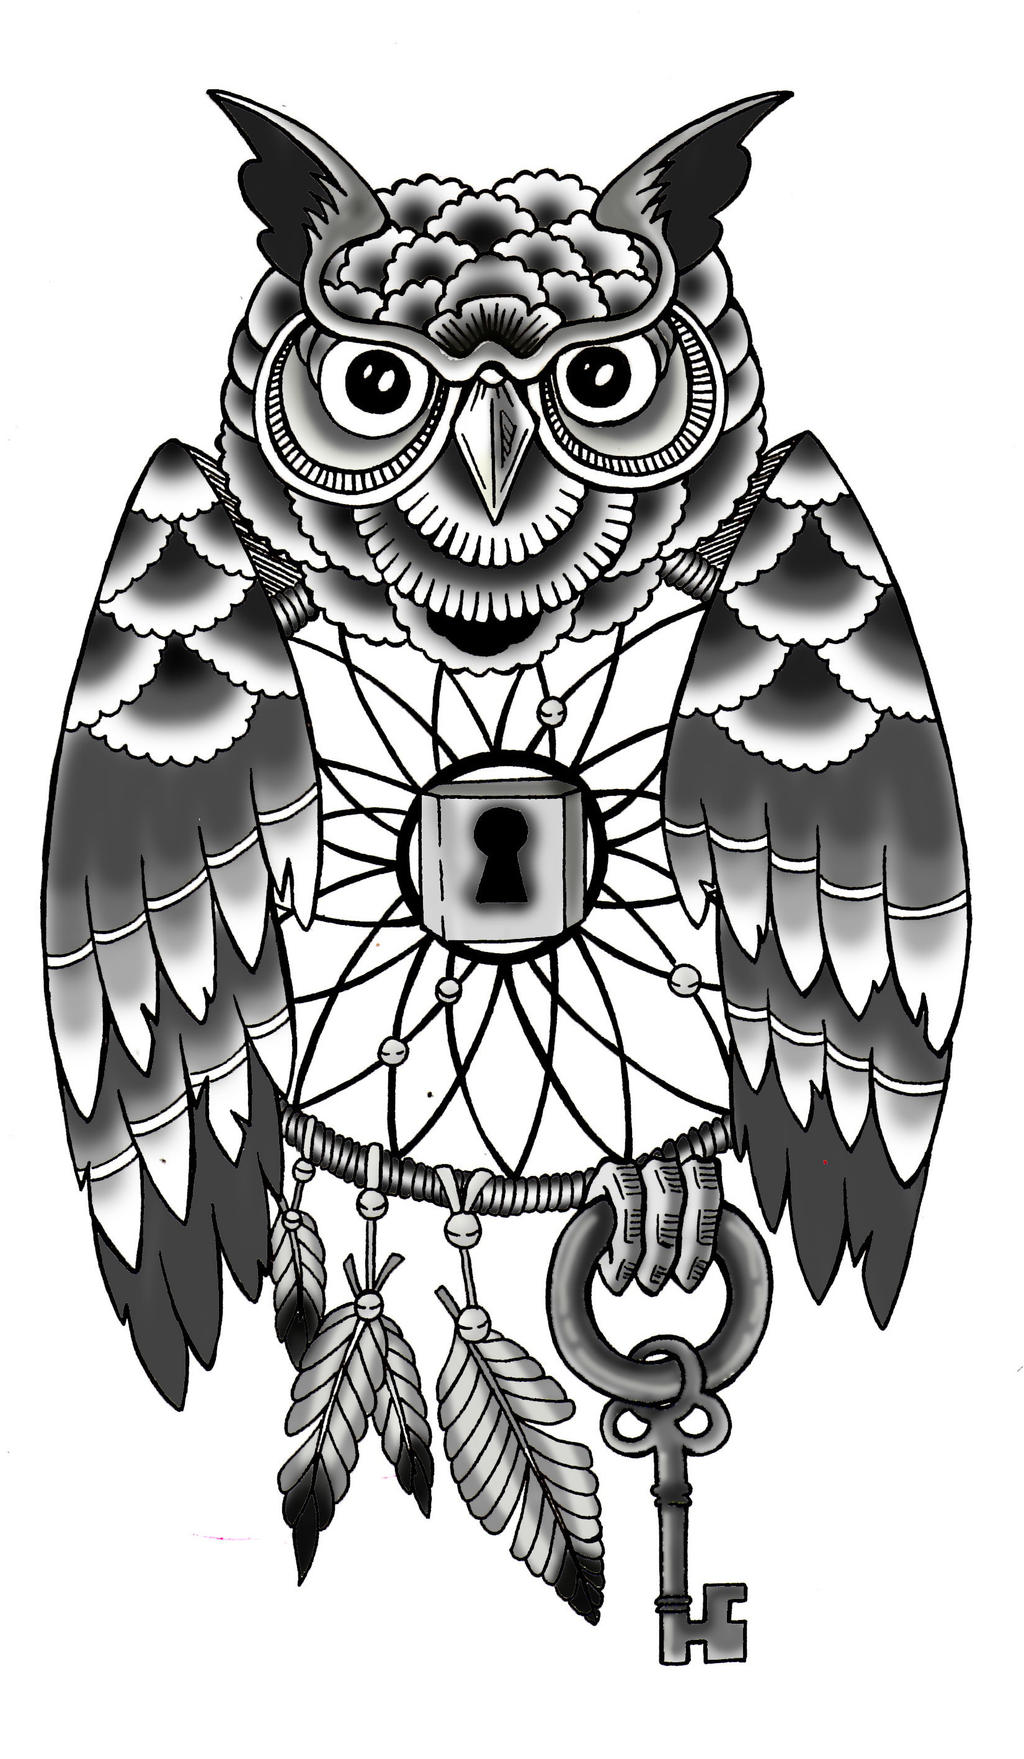 Owl dreamcatcher drawing - photo#25